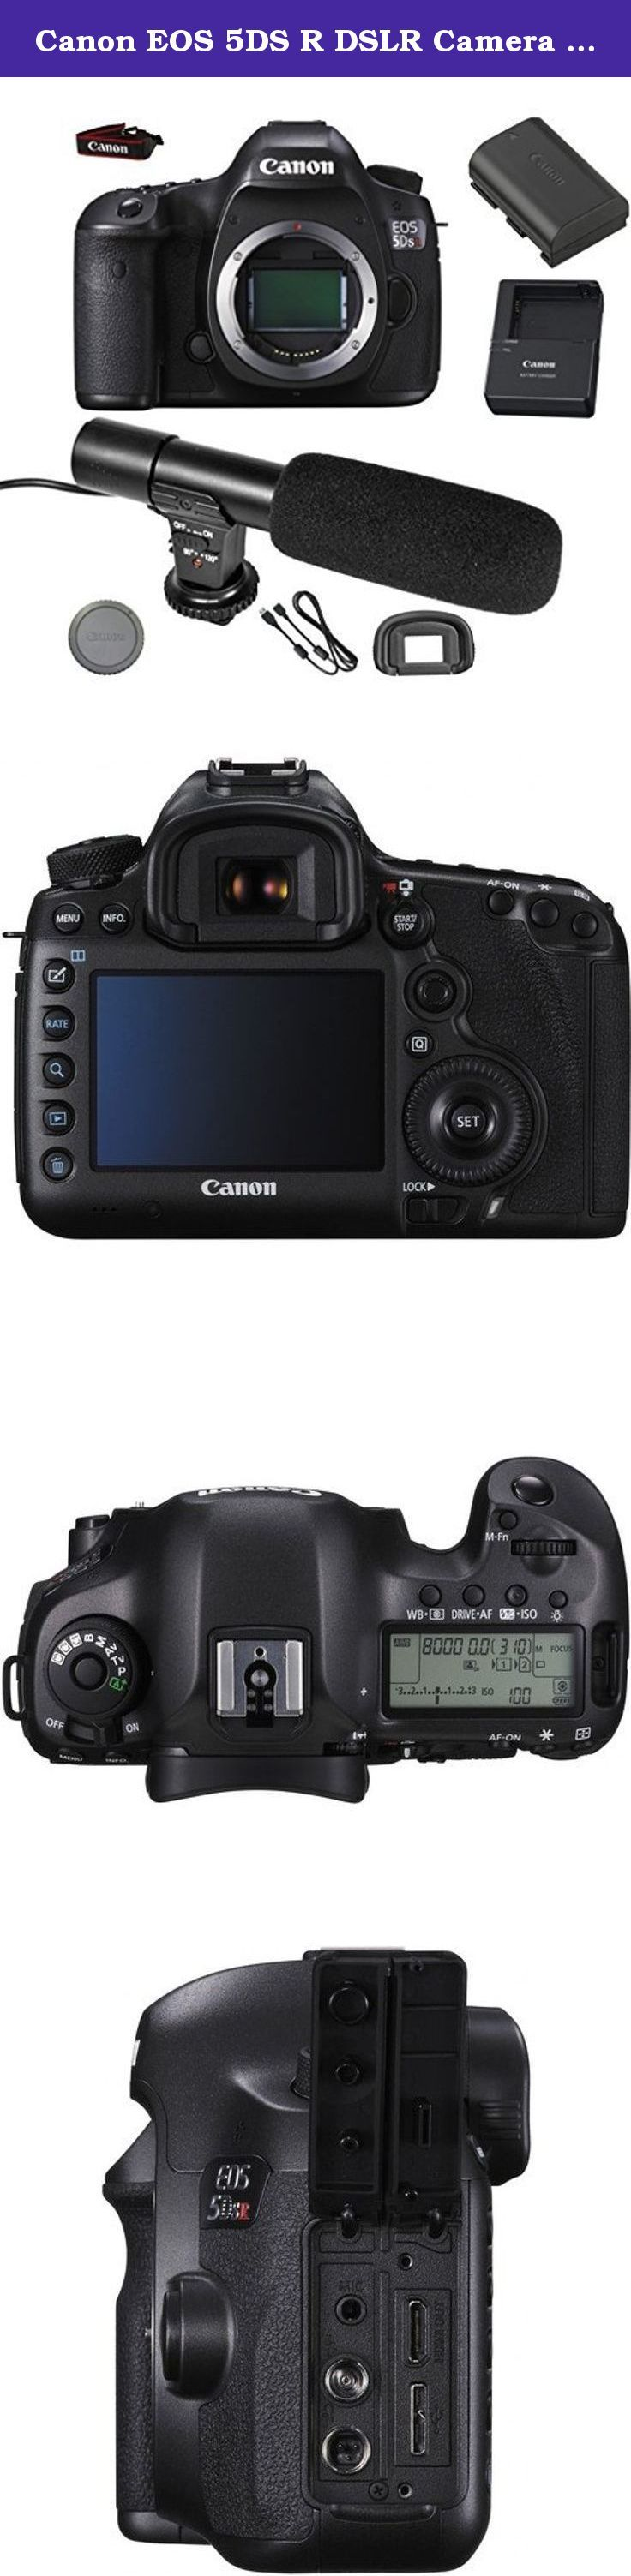 Canon EOS 5DS R DSLR Camera (Body Only) + On-Camera Shotgun Microphone - International Version. This GracePhotoNY bundle includes : Canon EOS 5DS-R DSLR Camera (Body Only) On-Camera Shotgun Microphone LC-E6 Charger for LP-E6 Battery Pack LP-E6N Lithium-Ion Battery Pack (7.2V, 1865mAh) RF-3 Body Cap for Canon EOS Cameras Eyecup Ef for Digital Rebel Cameras EW-300D Wide Strap Interface Cable EOS Digital Solution Disk .